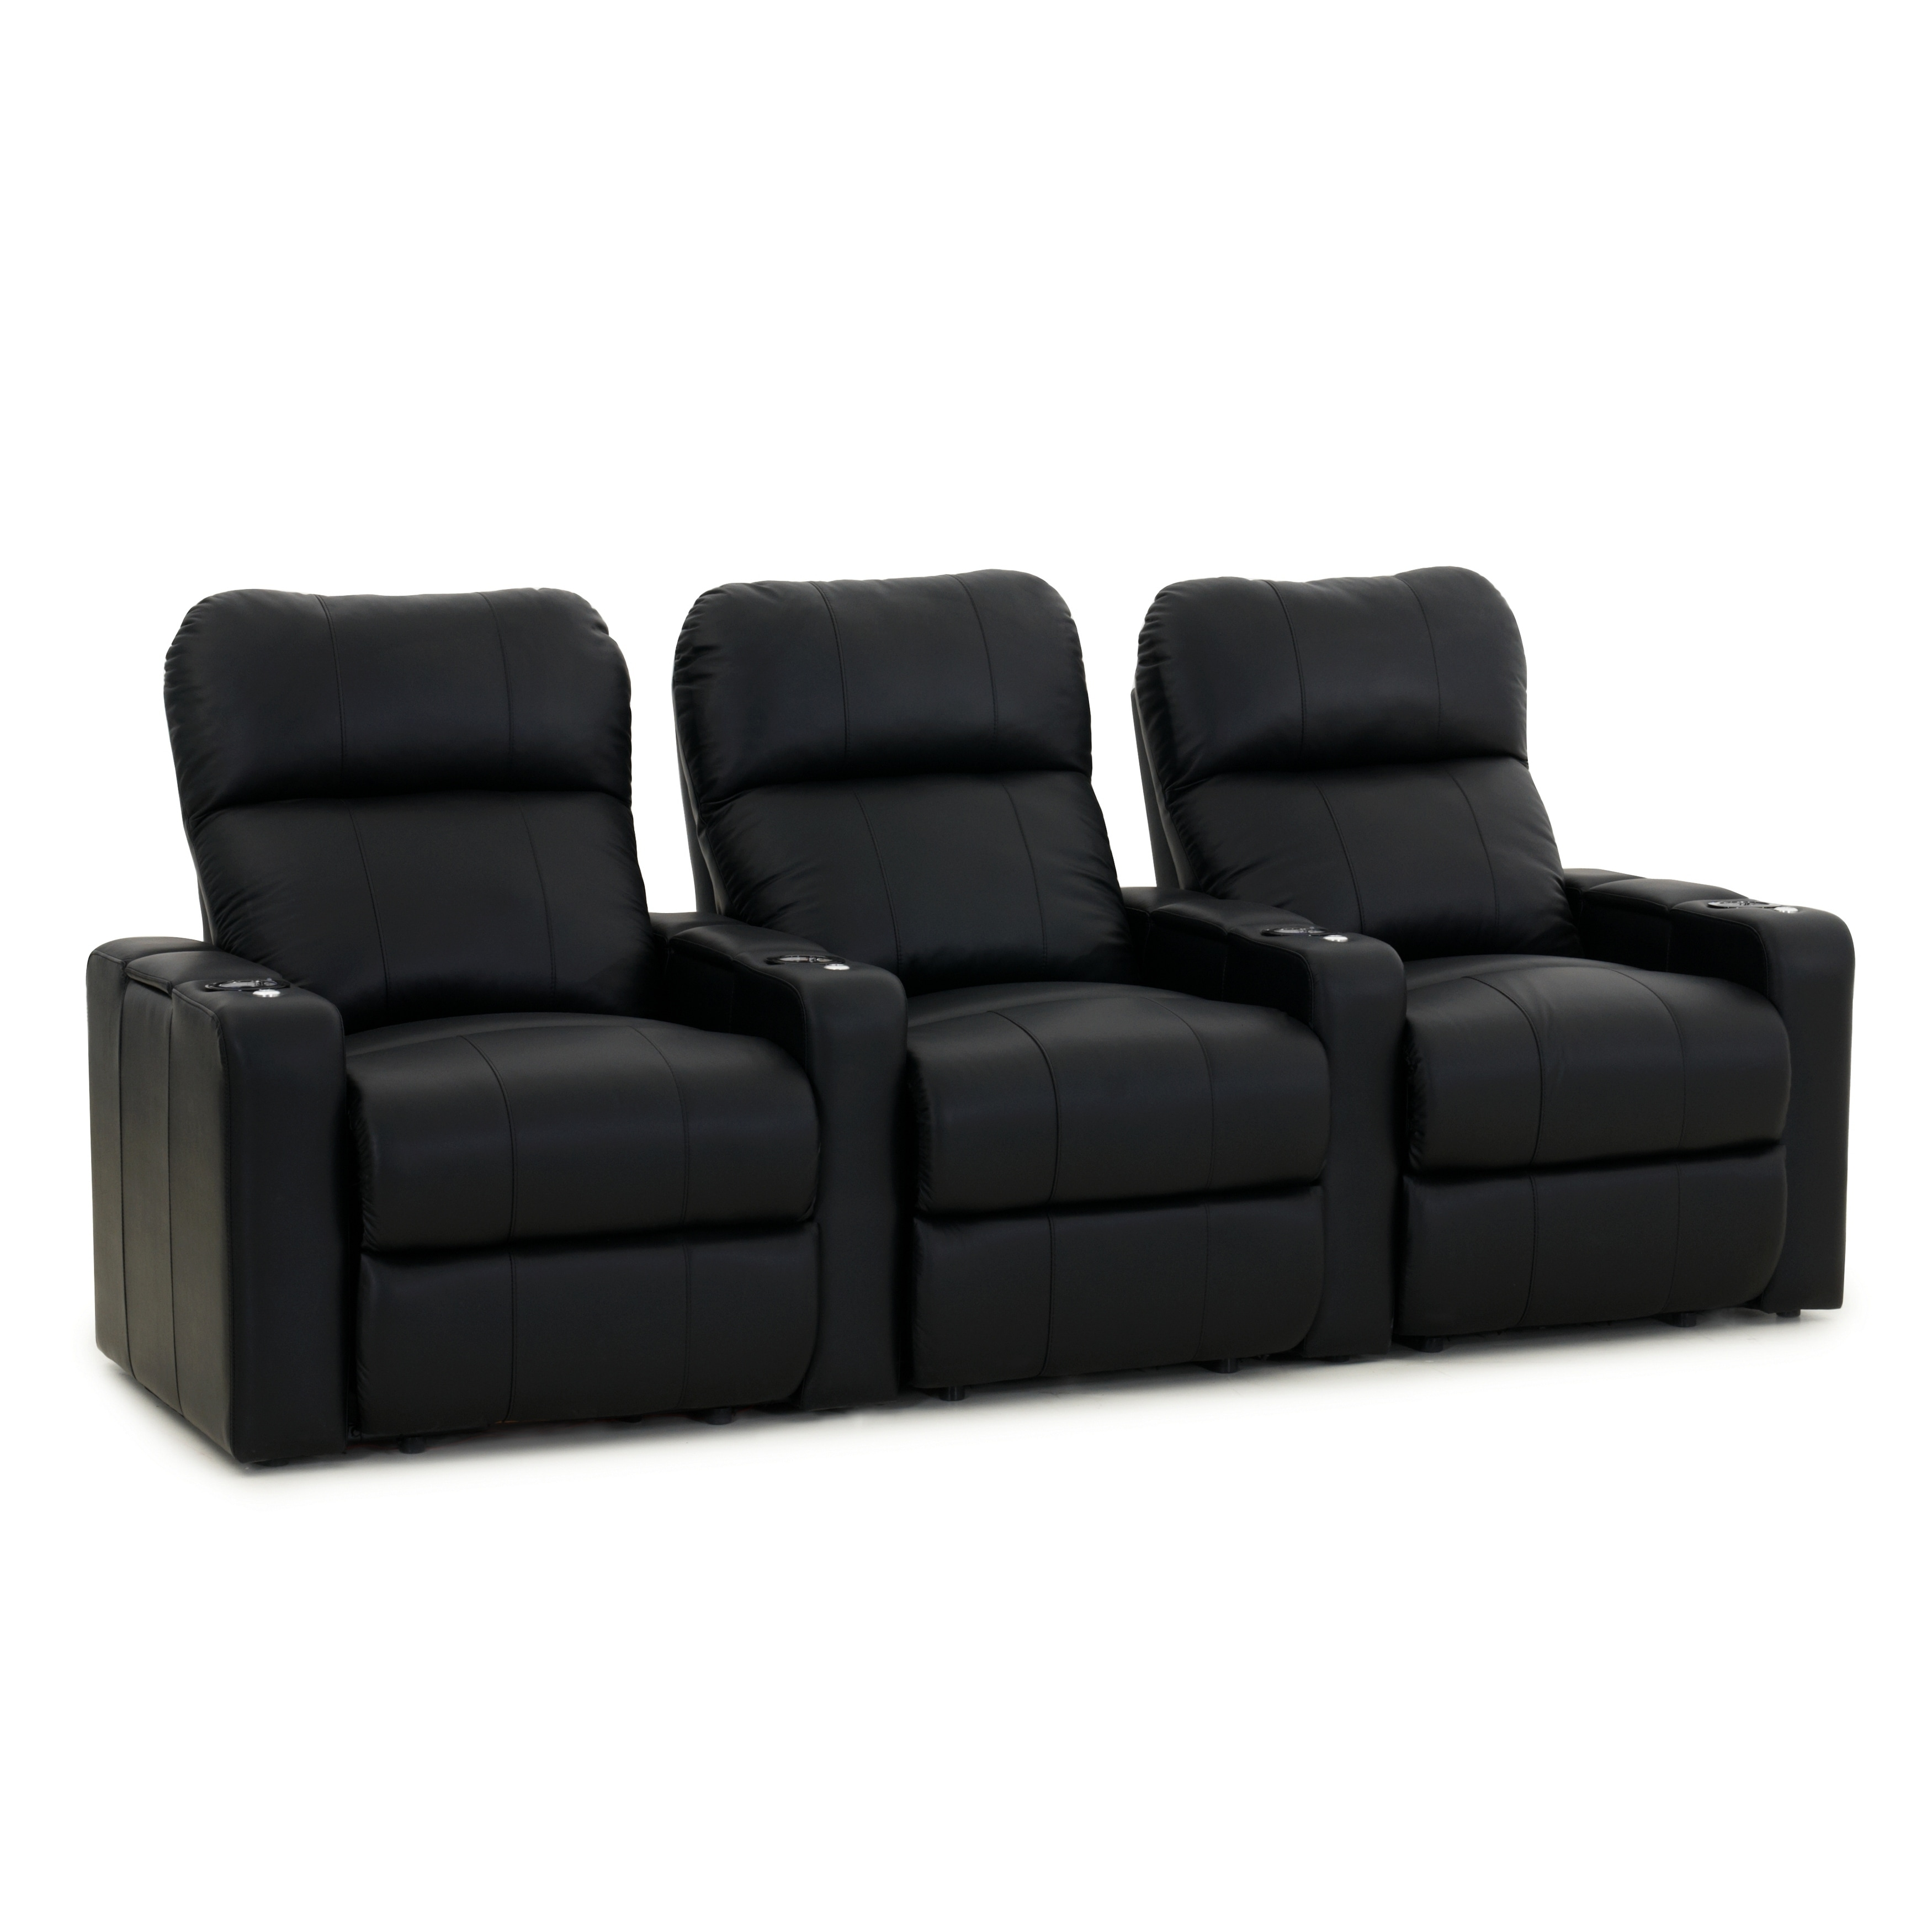 Octane Turbo Xl700 Manual Leather Home Theater Seating Set Row Of 3 Free Shipping Today 18225586